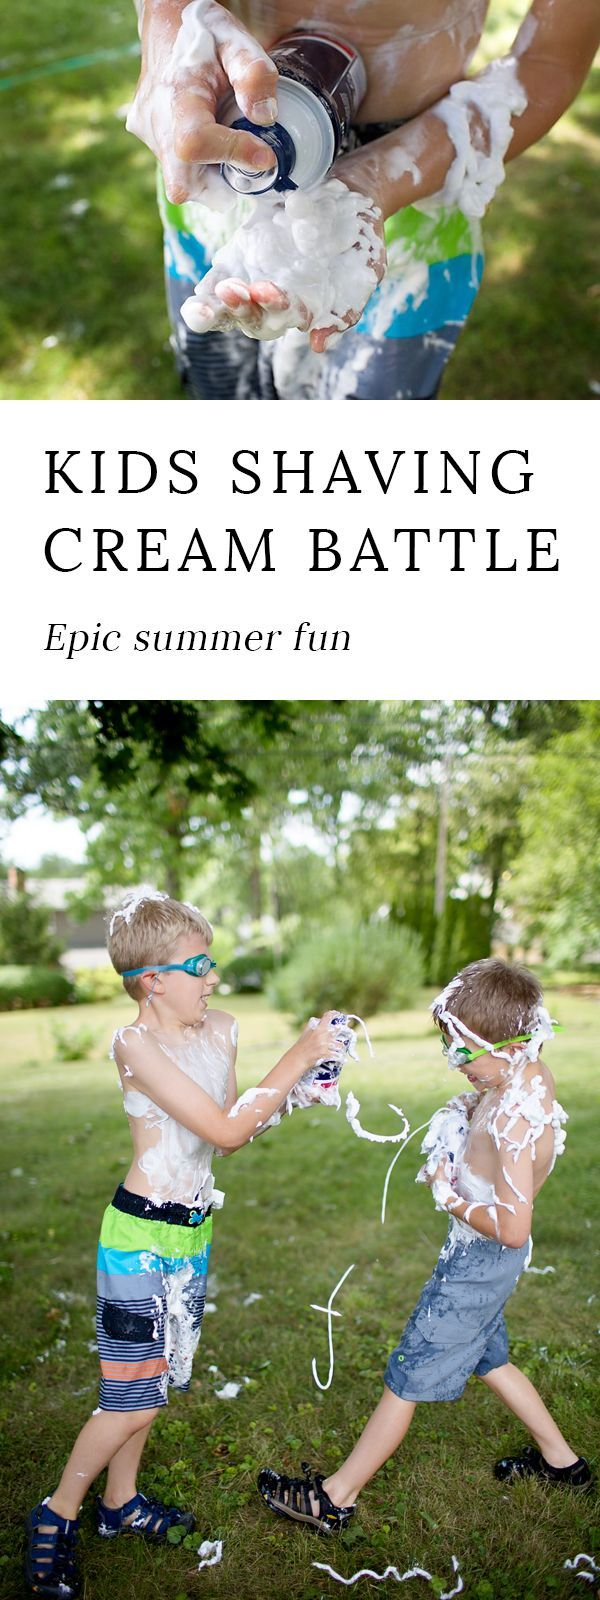 Want to make this summer one they will never forget? Turn on the sprinkler, pass the kids a couple cans of shaving cream, then prepare for the most epic, most messy, and most memorable day yet. Enjoying a Shaving Cream Battle is the perfect way to connect as a family, share laughter, and enjoy a beautiful summer day.